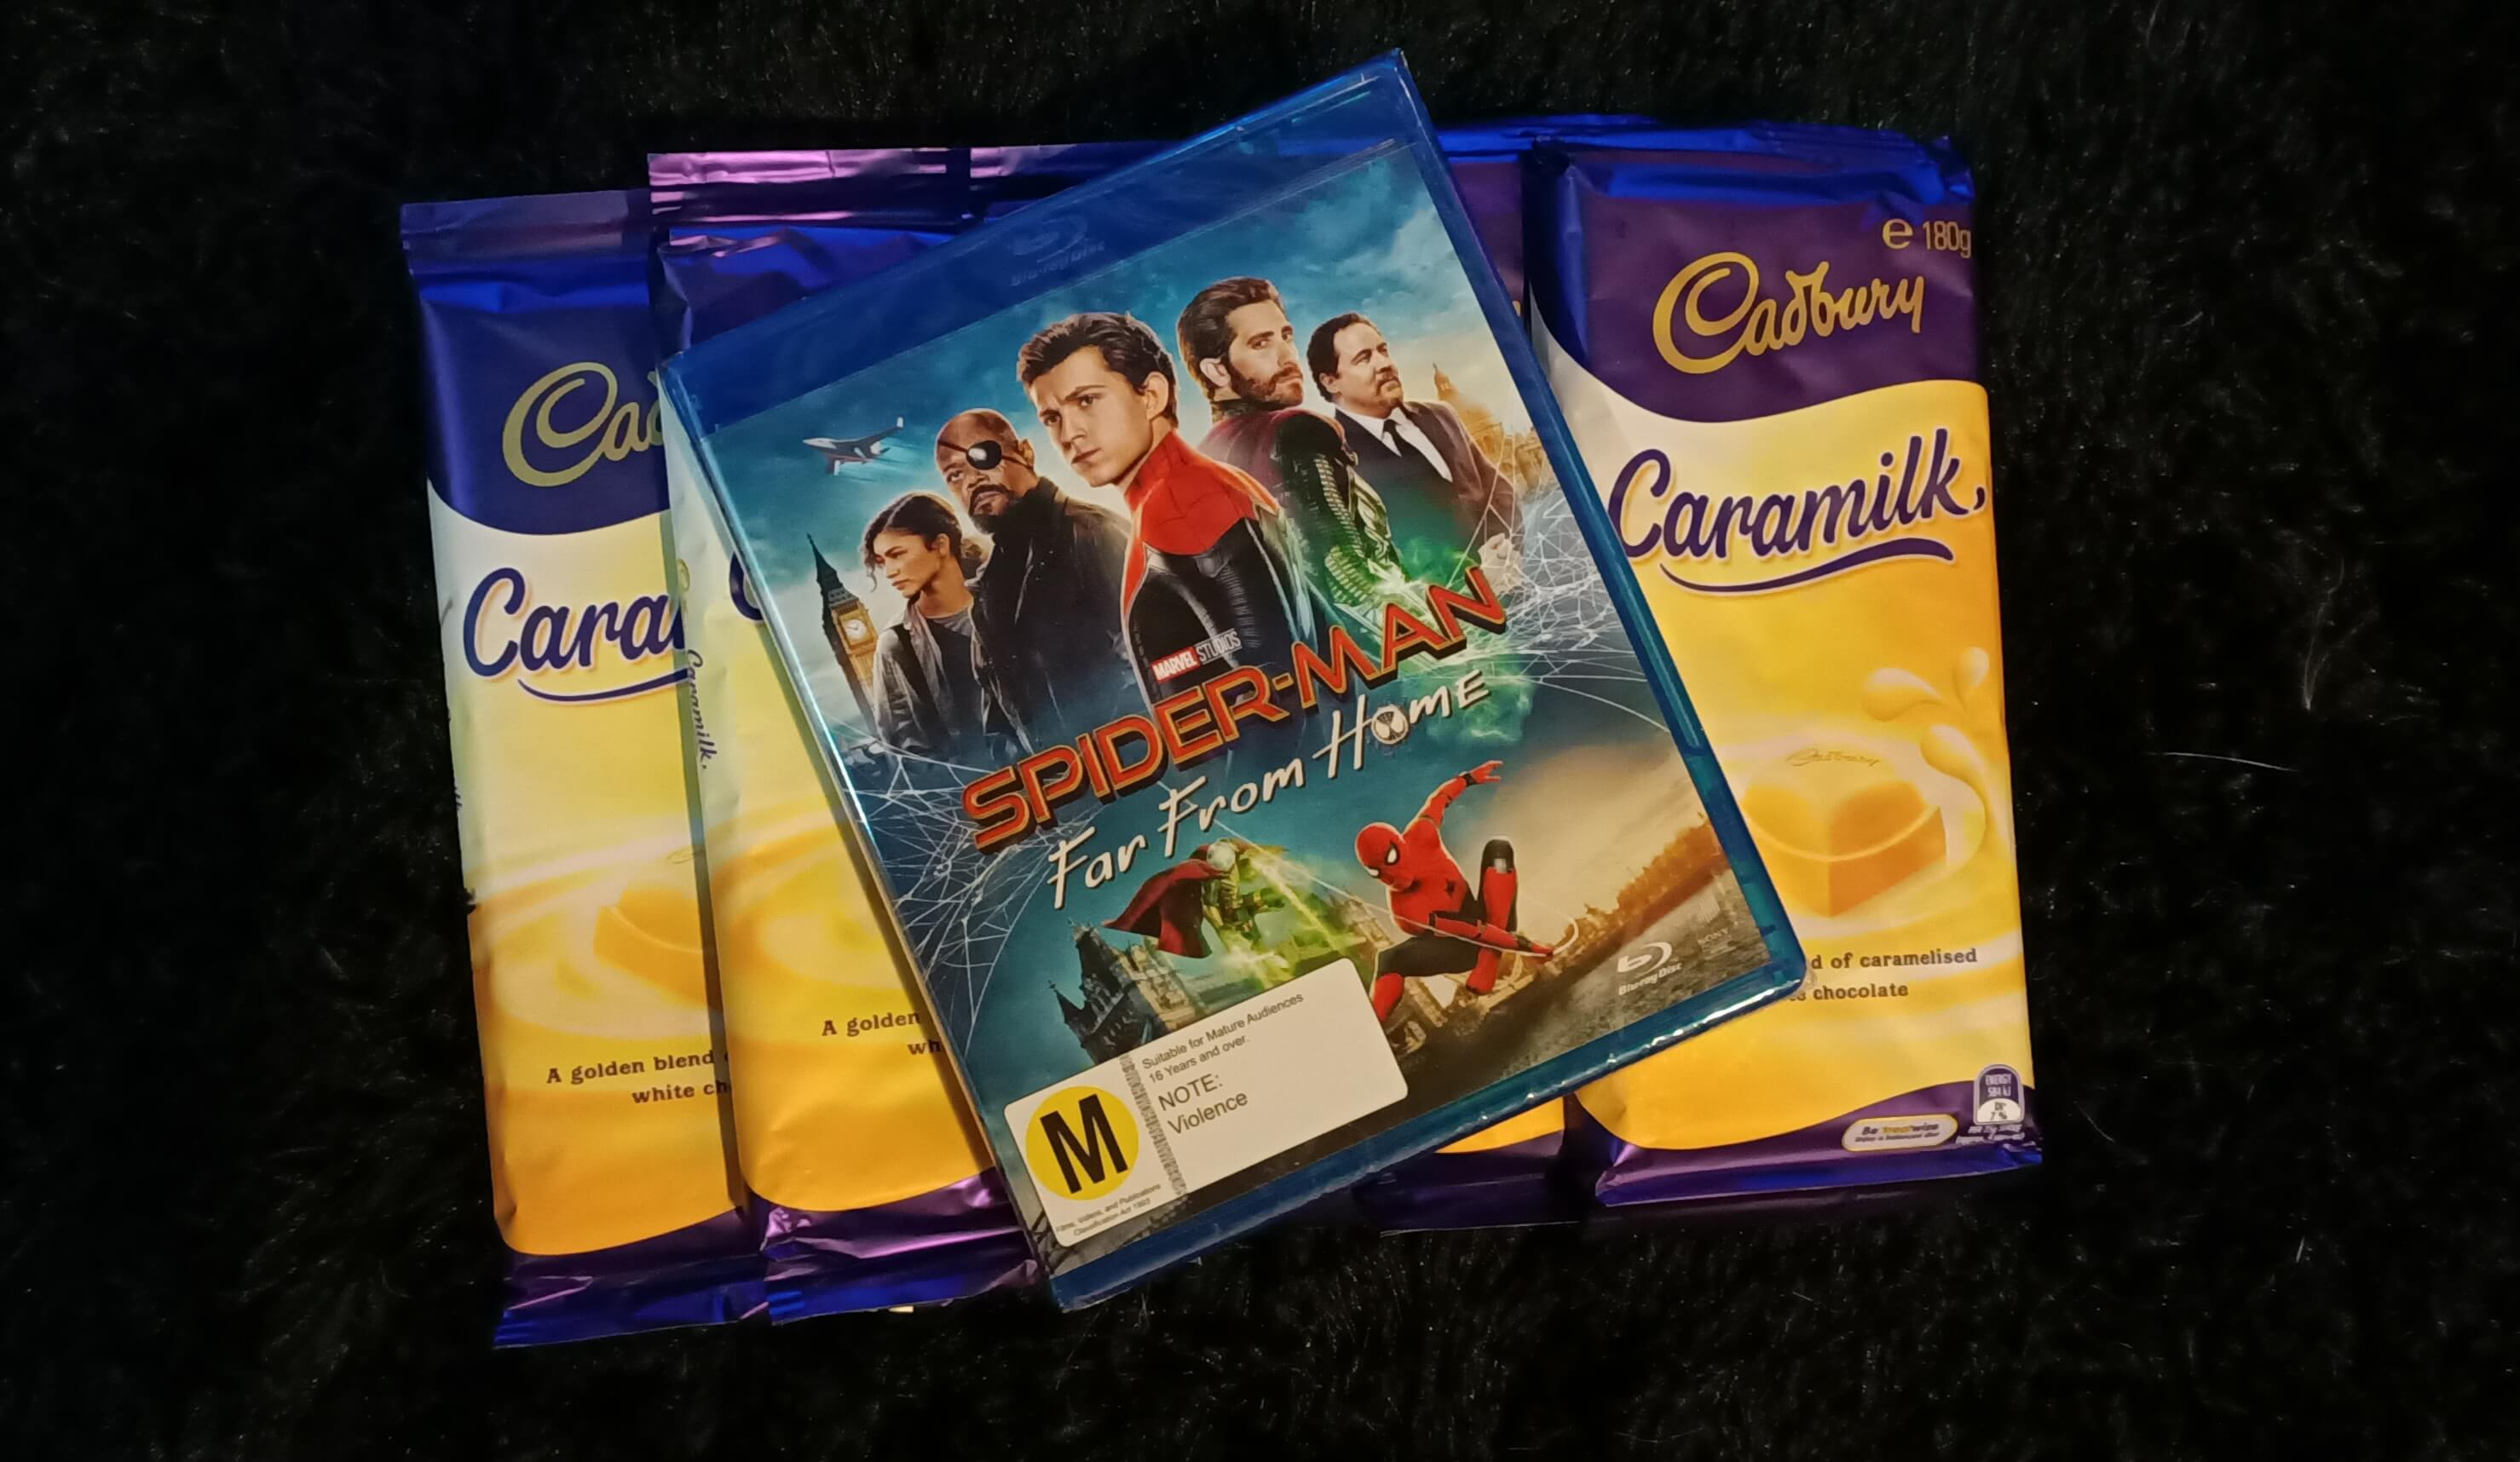 Spider-Man Far From Home & Cadbury Caramilk